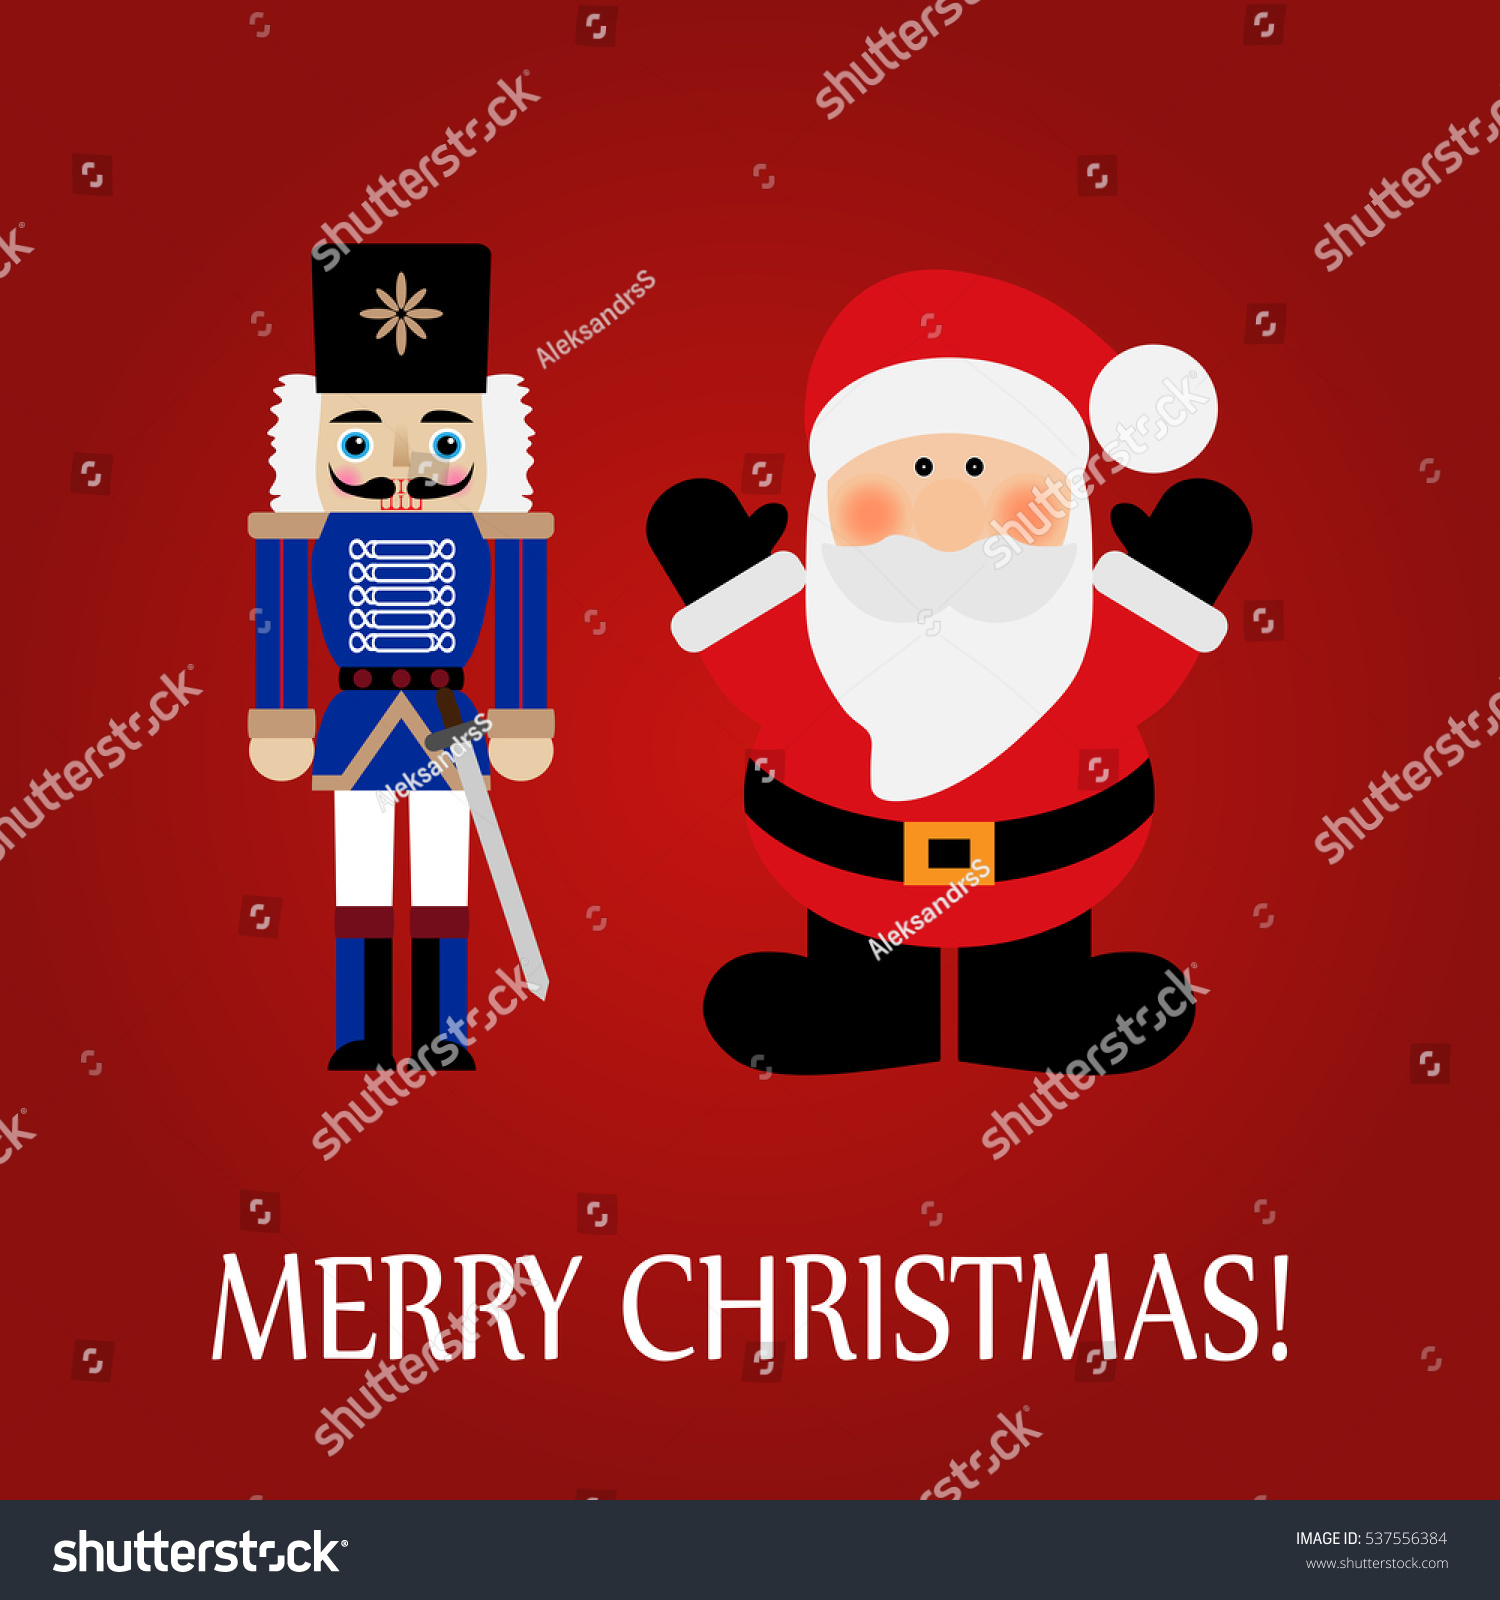 Vector illustration of a santa claus and nutcracker with